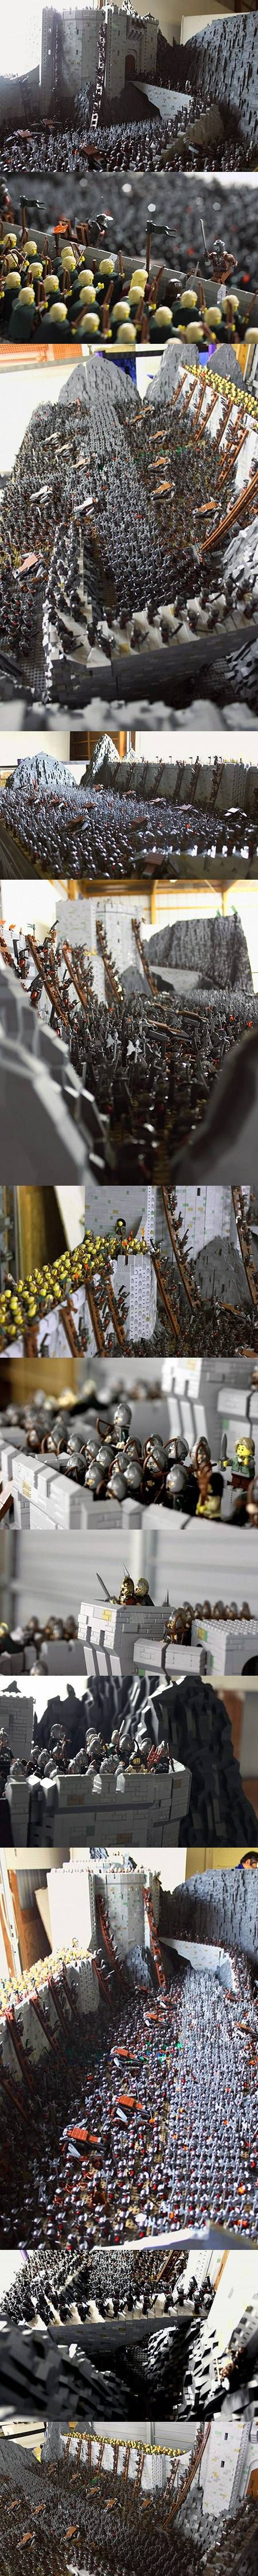 LEGO master recreates Lord of the Rings Battle of Helm's Deep with 150,000 bricks.